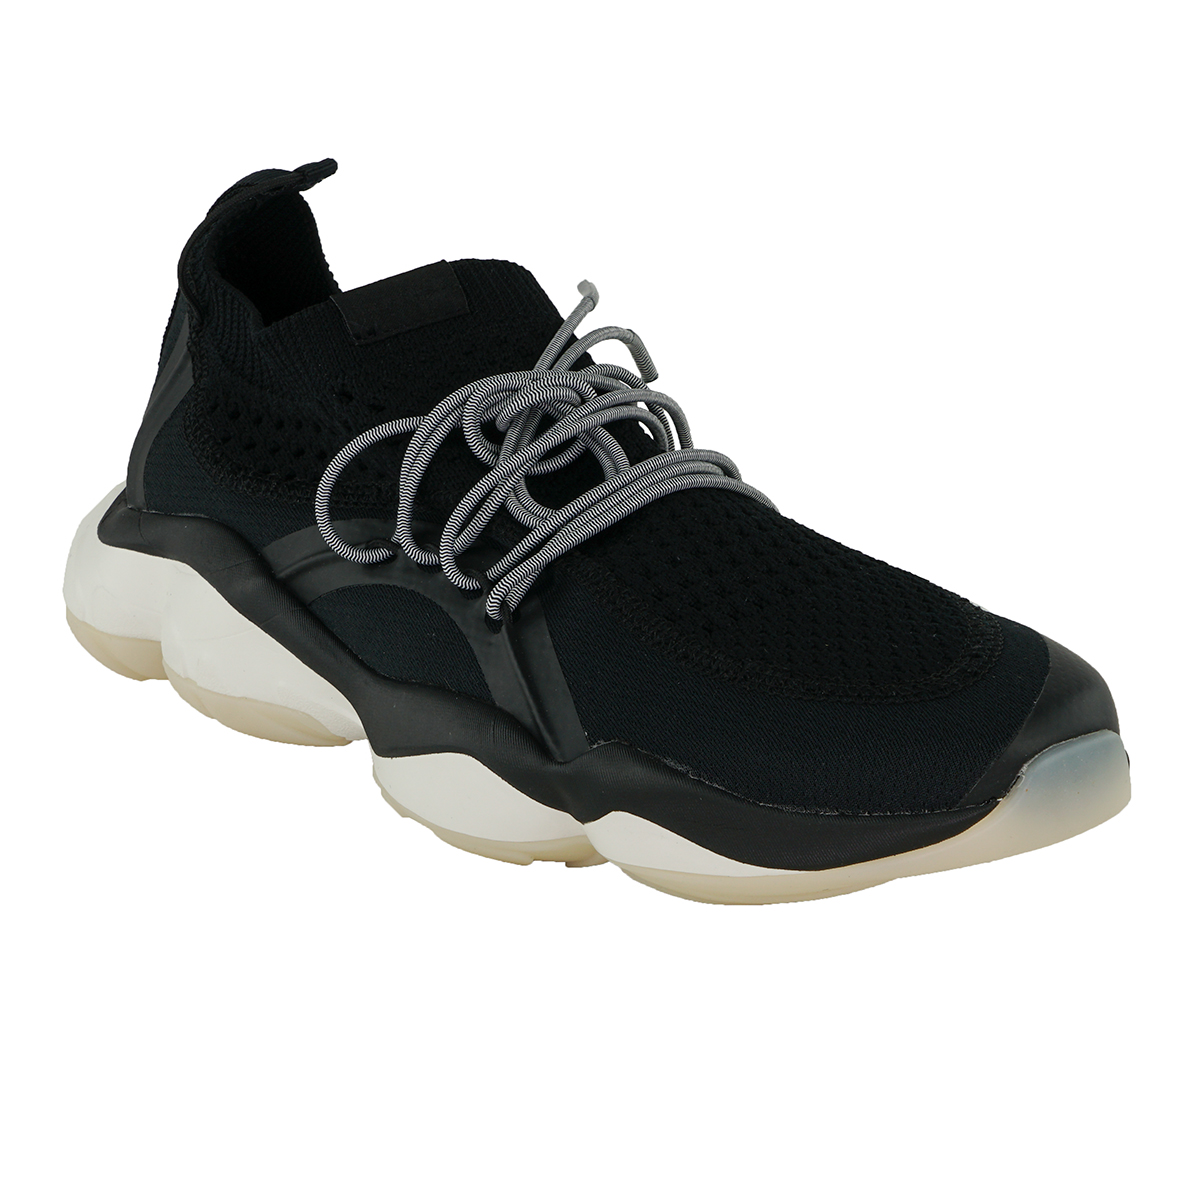 cad6e50c7f8 Reebok Men s DMX Fusion CI Shoes Black White Chalk 9 191040635663